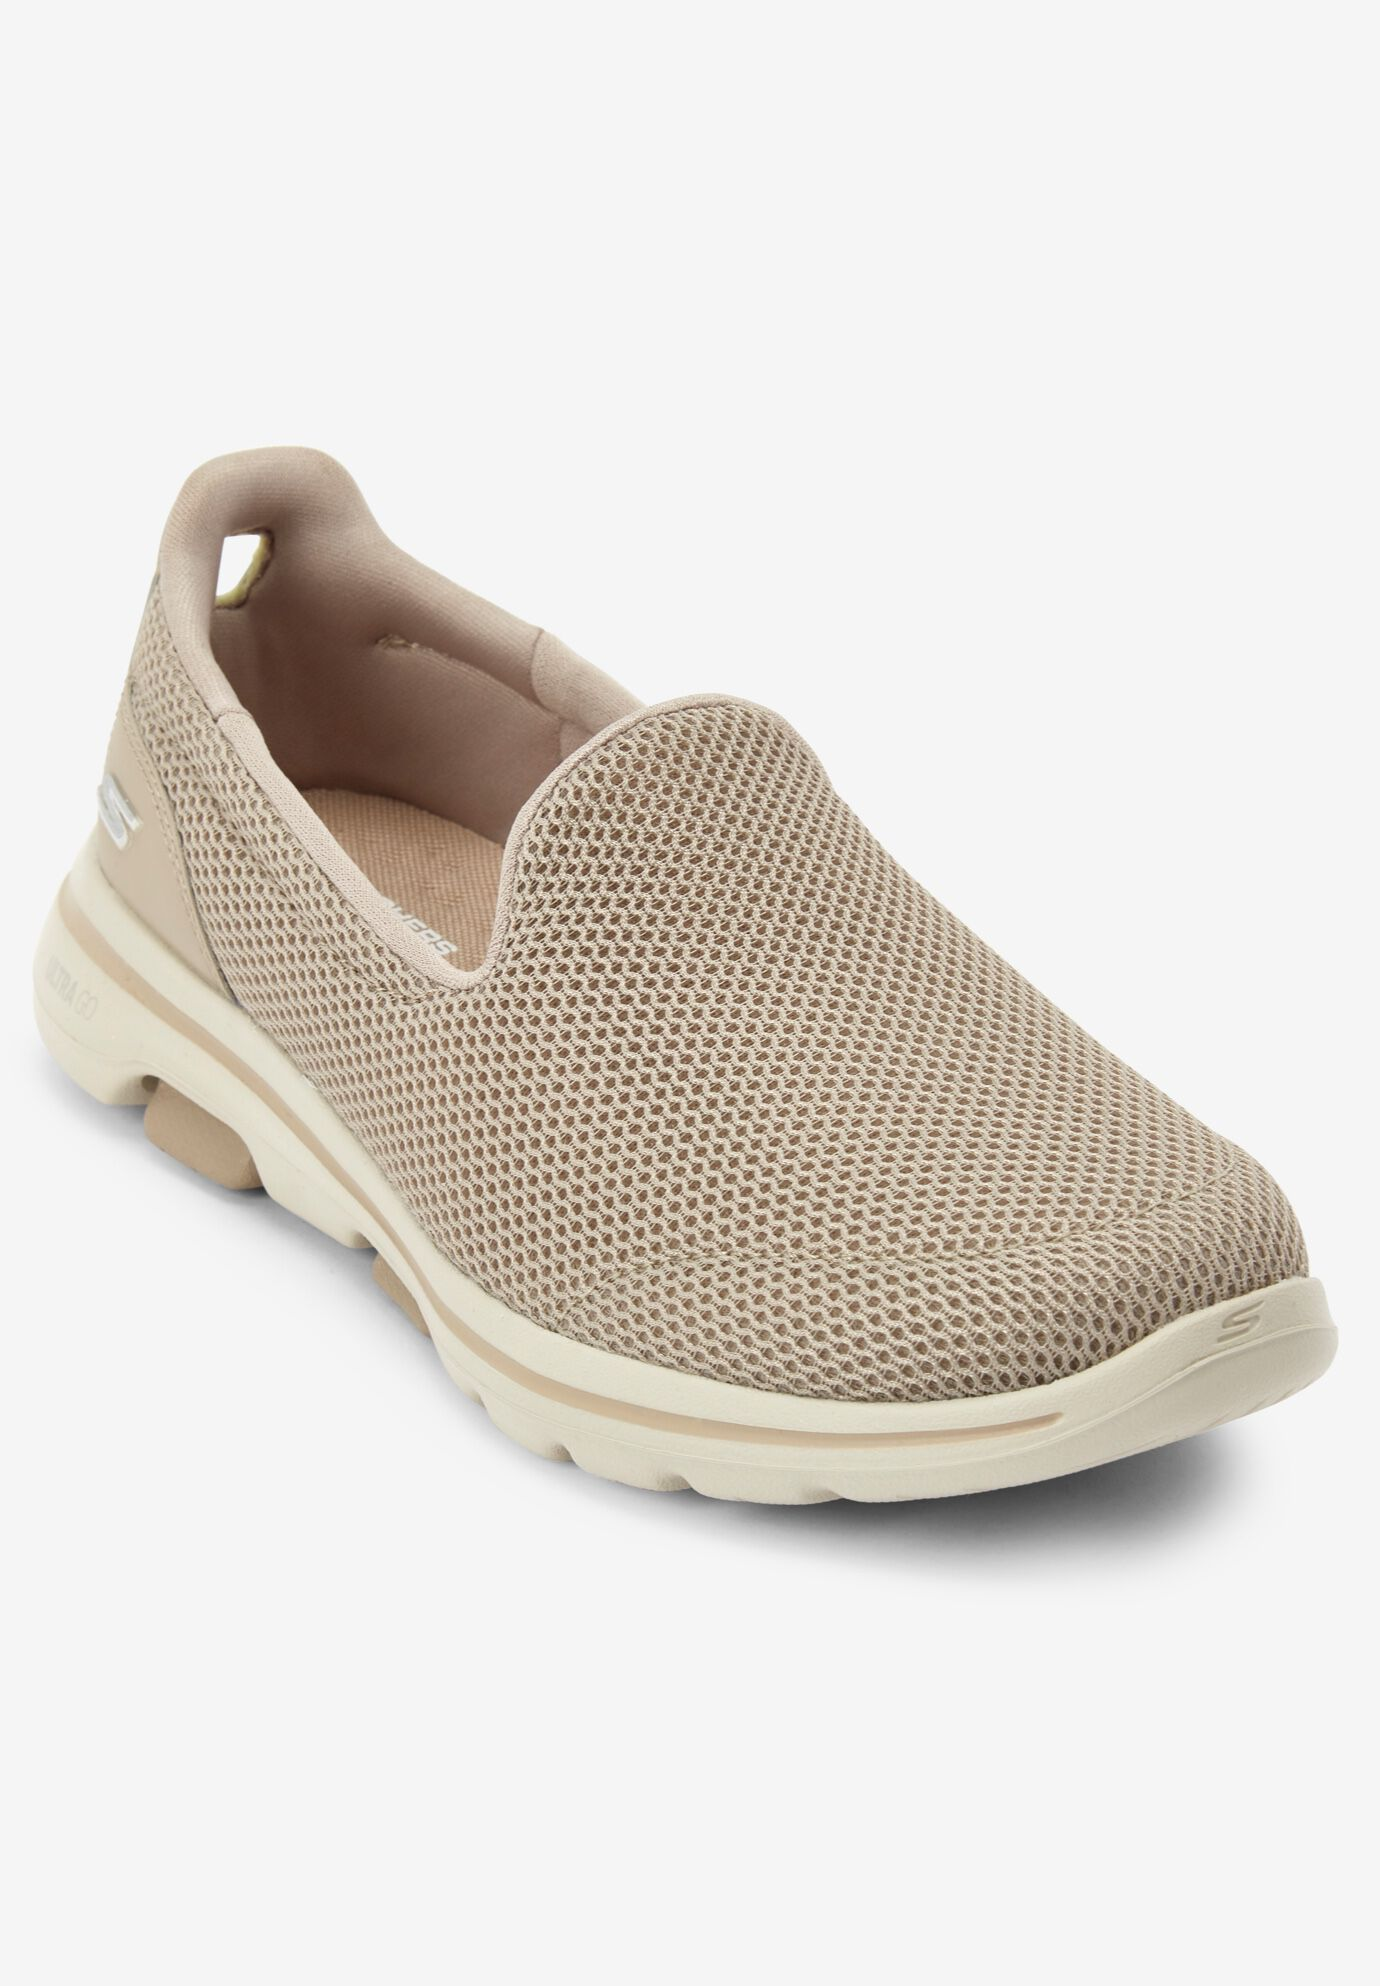 Skechers Wide Fit Shoes \u0026 Sneakers for